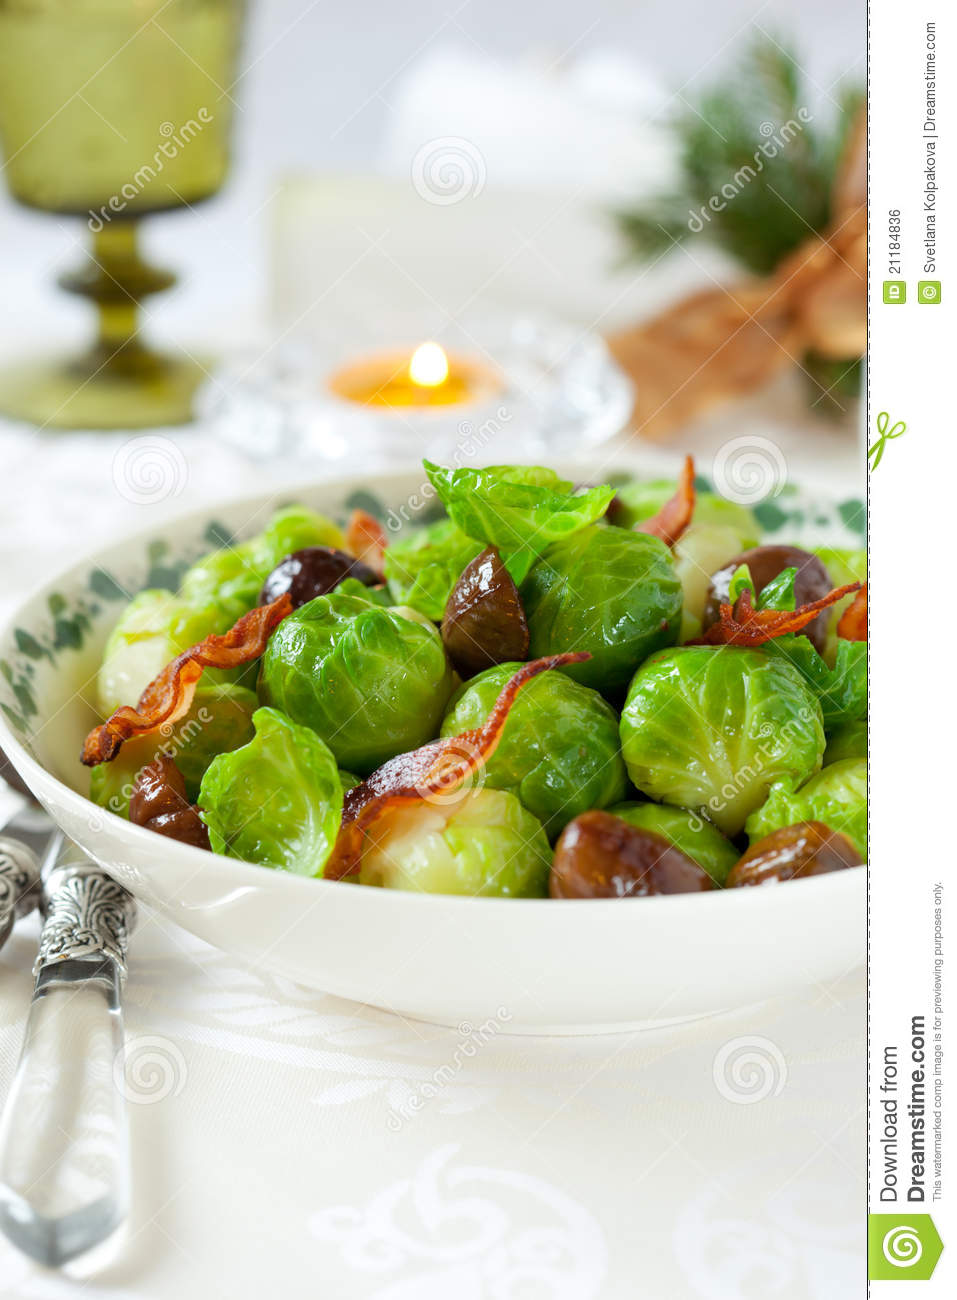 Brussels Sprouts With Bacon And Chestnuts Royalty Free ...